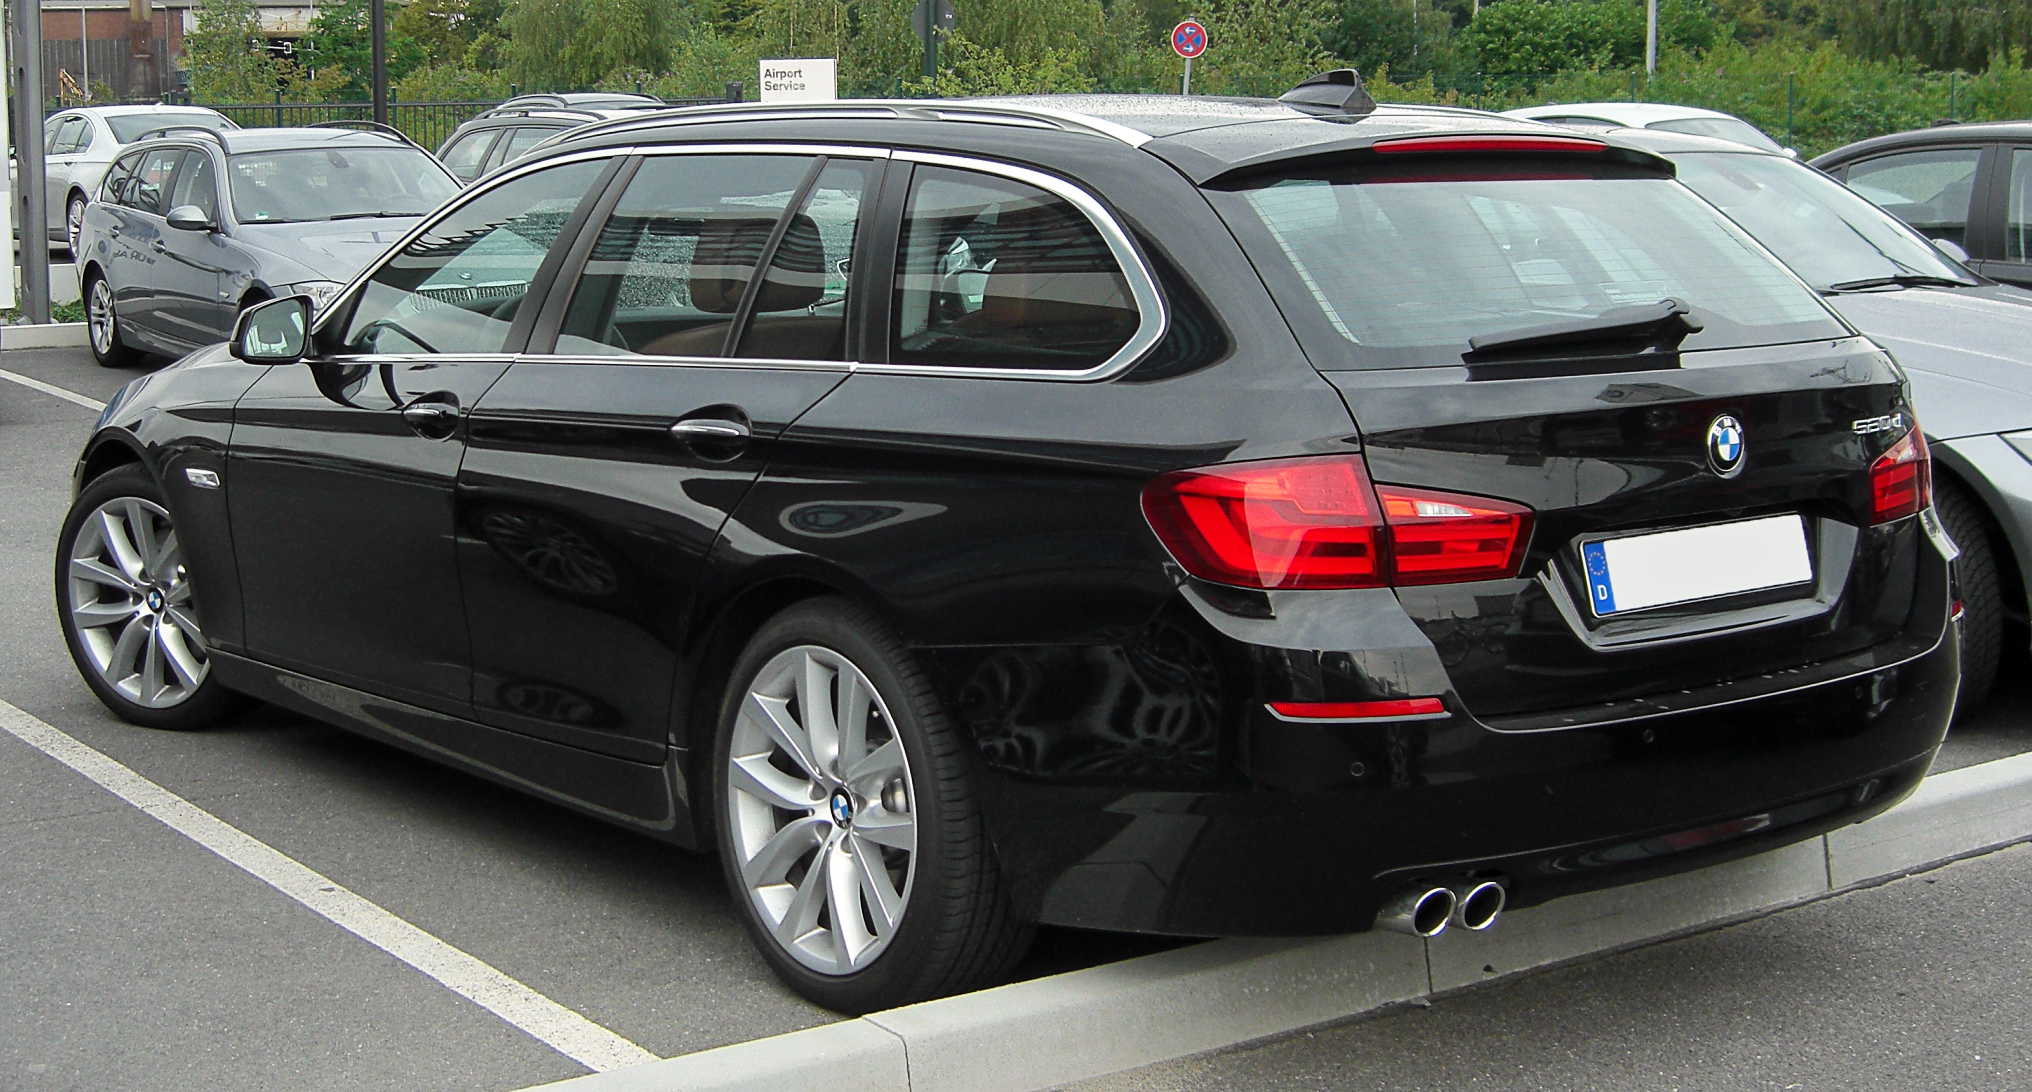 file bmw 520d touring f11 rear wikipedia. Black Bedroom Furniture Sets. Home Design Ideas